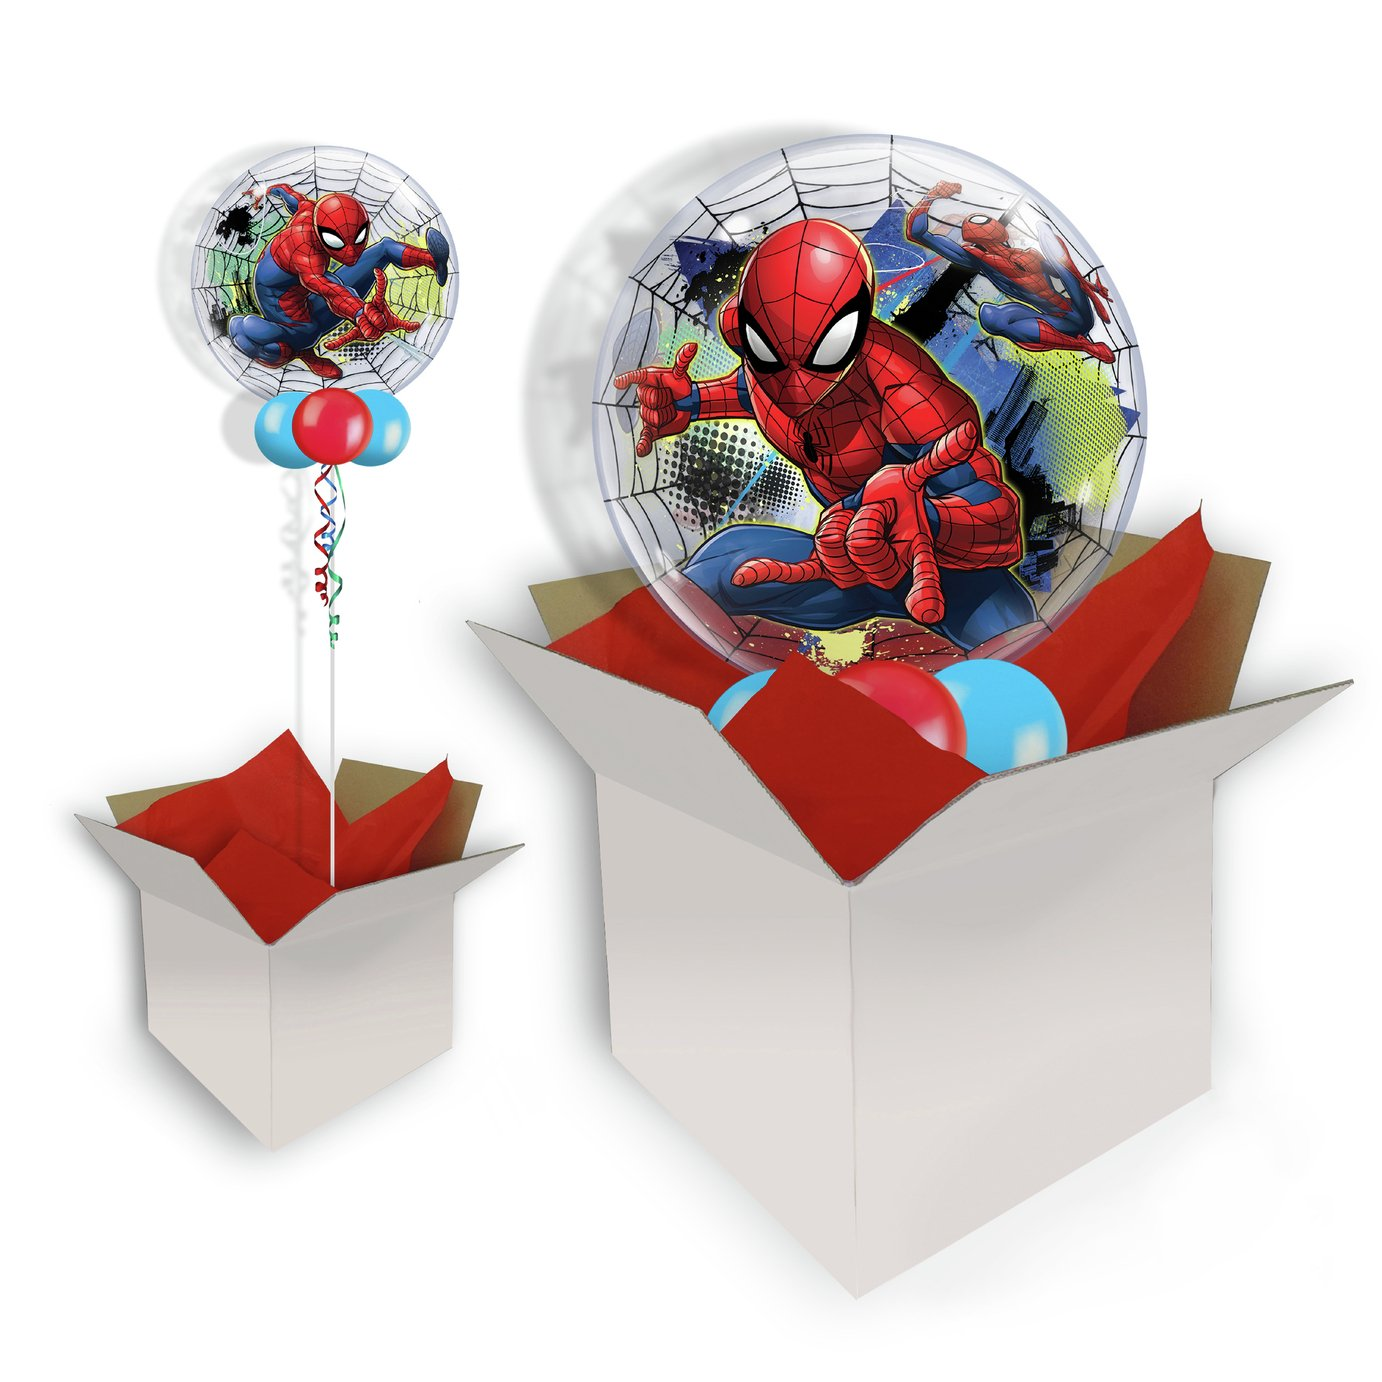 Marvel Spider-Man Web Bubble Balloon In A Box